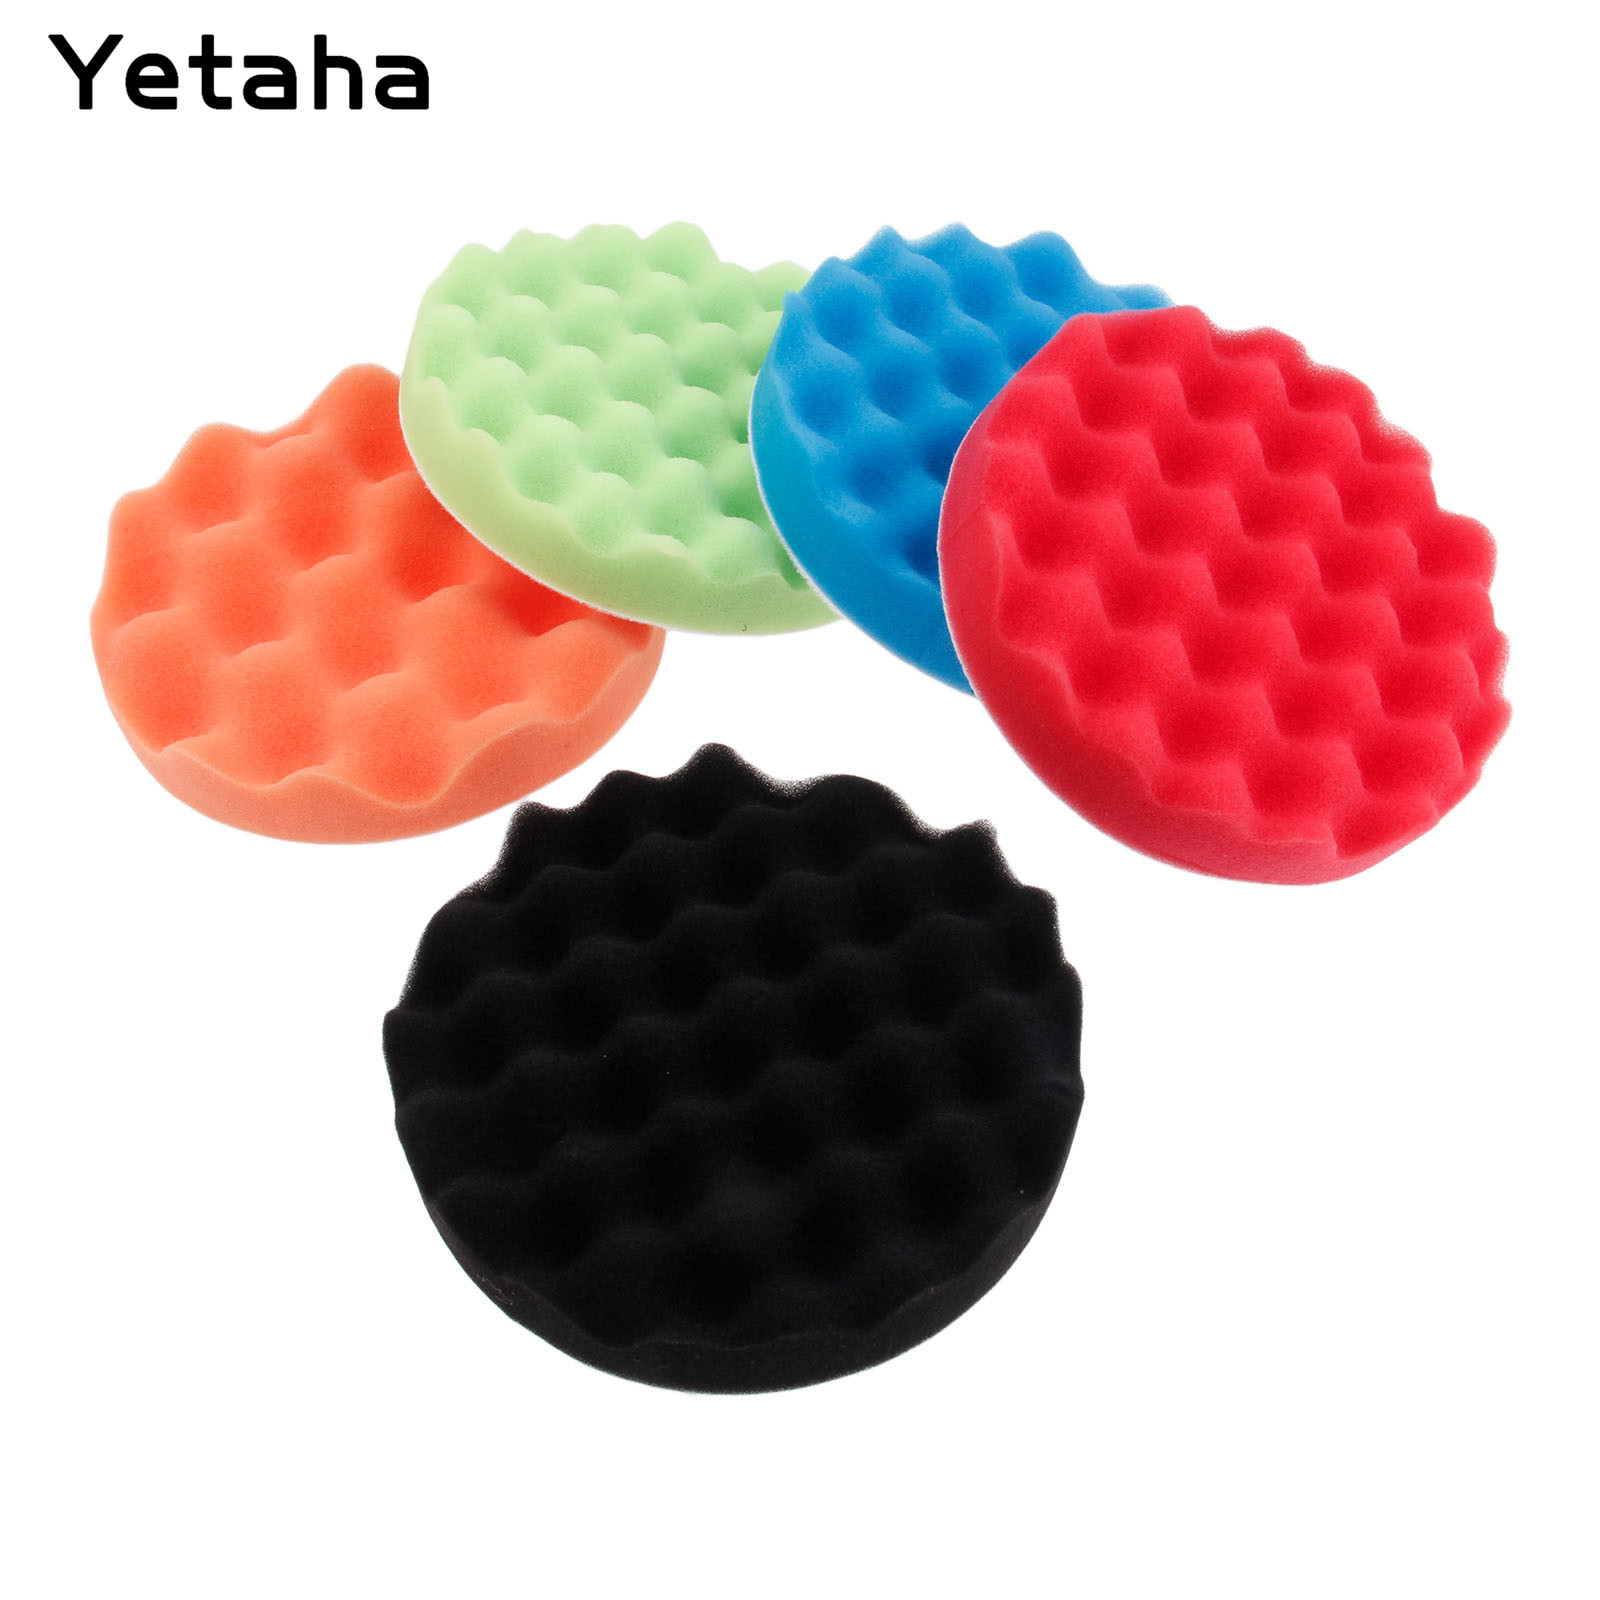 """5Pcs 6"""" 7"""" 150/180mm Buffing Polishing Sponge Pads Kit Car Polisher Soft Wave Foam Waffle Pad Car Wash Cleaning Detailing Tool-in Sponges, Cloths & Brushes from Automobiles & Motorcycles"""